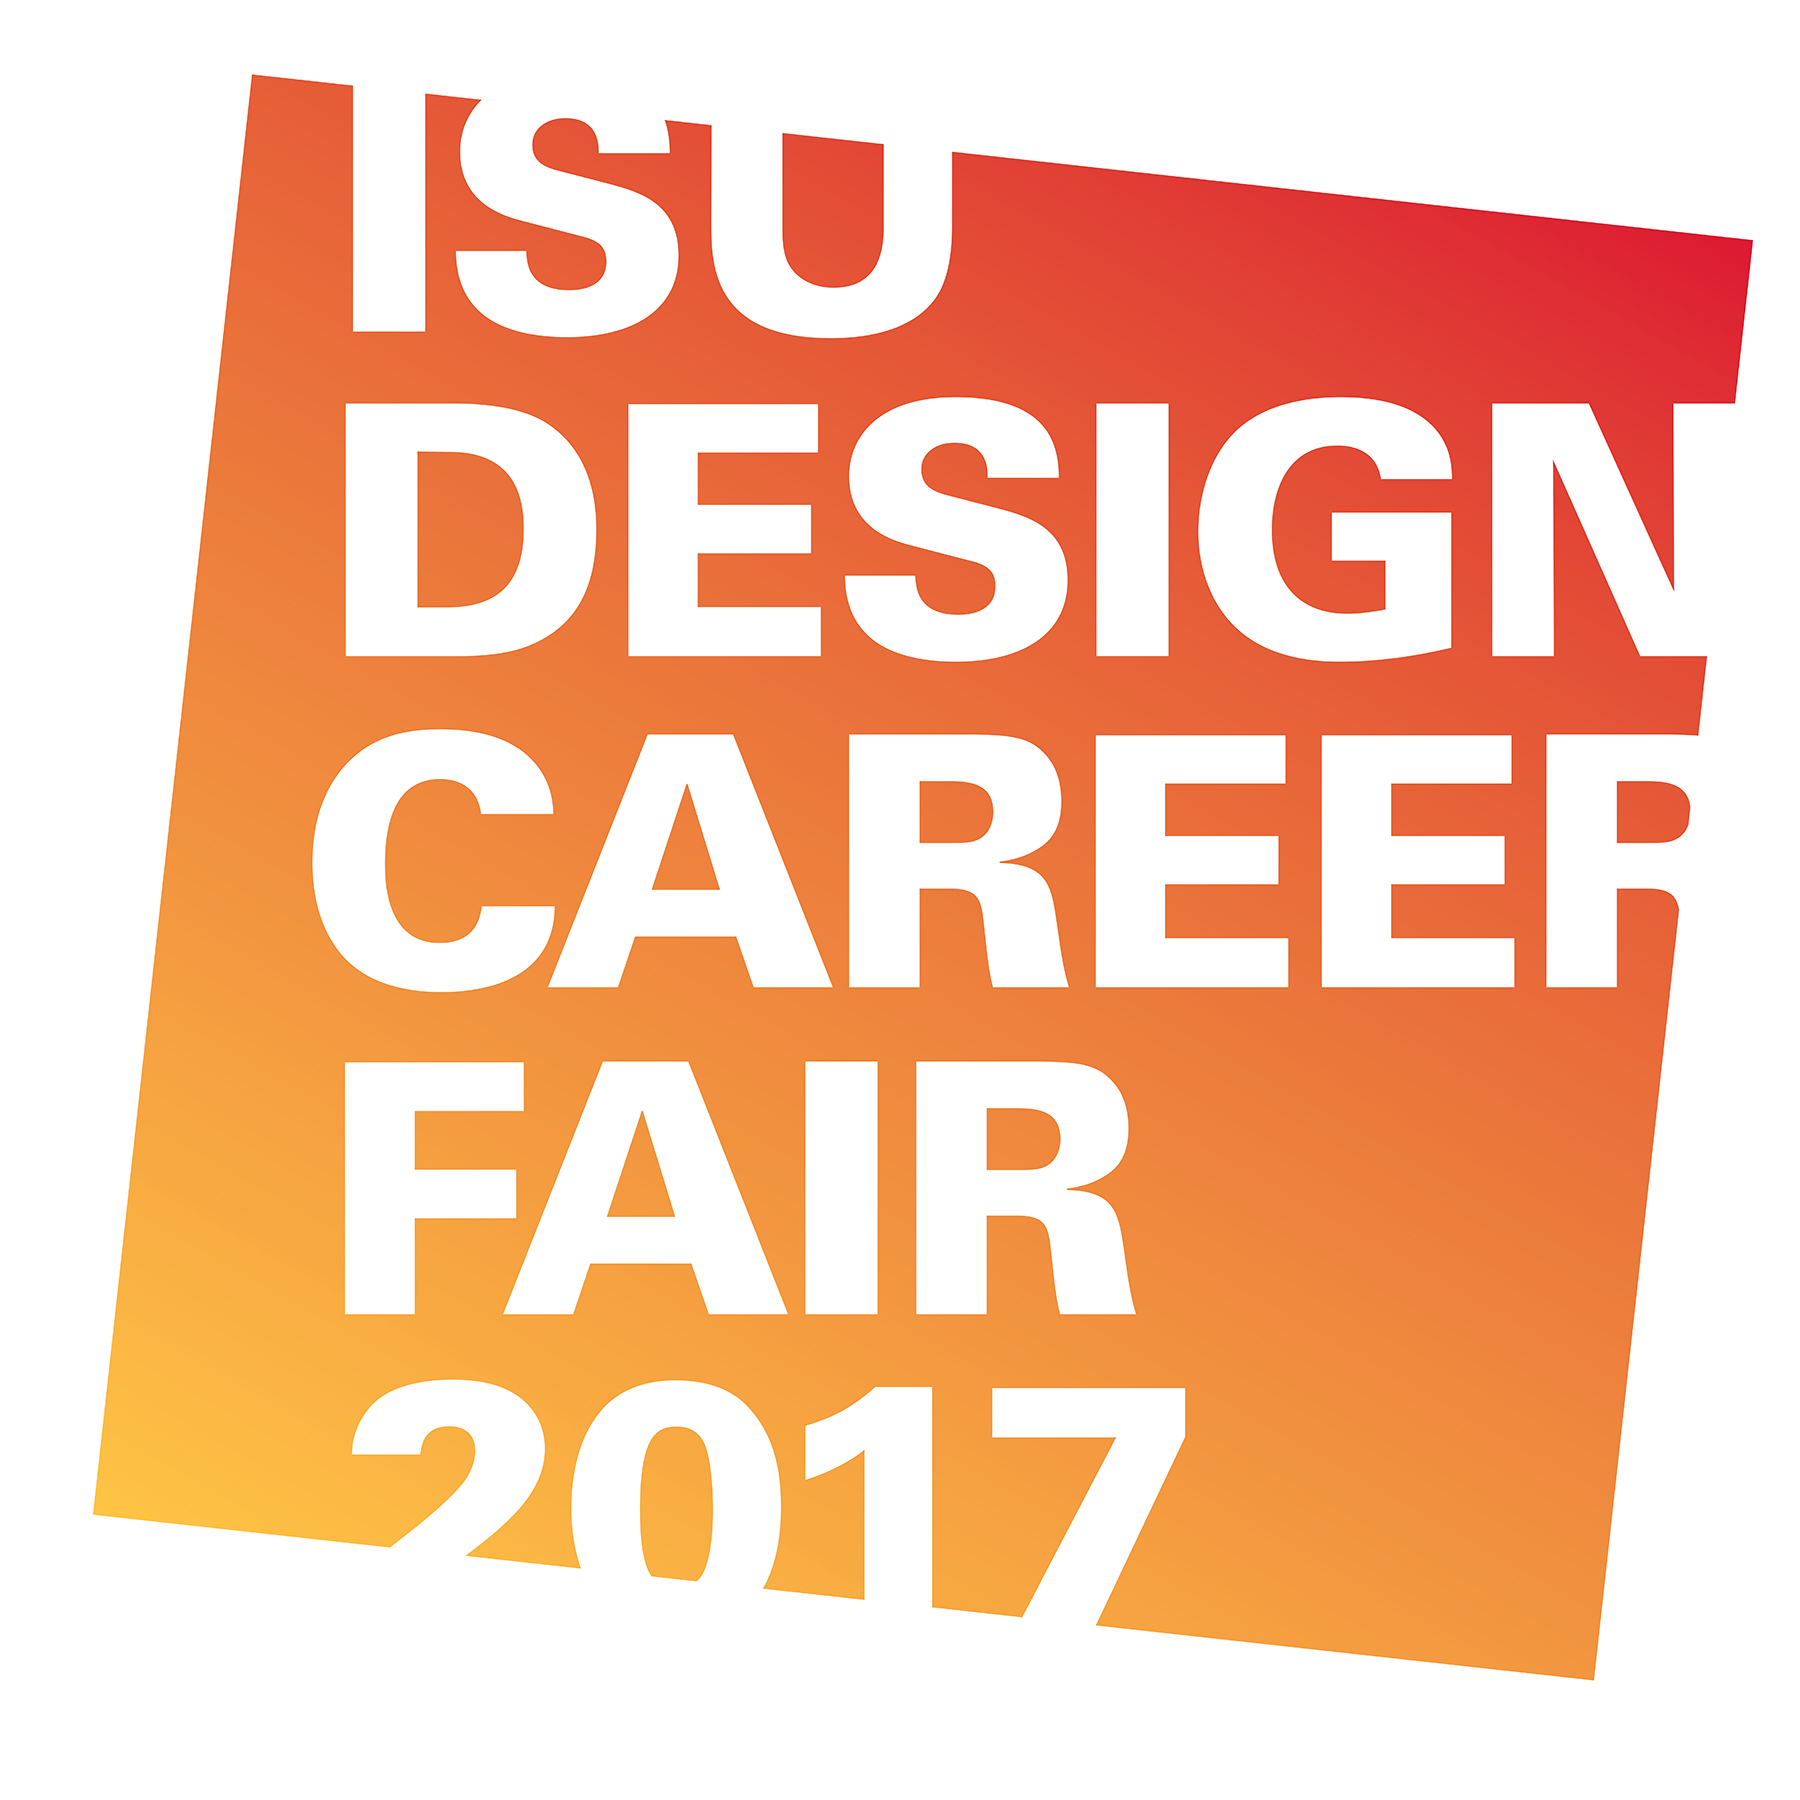 ISU Design Career Fair 20017